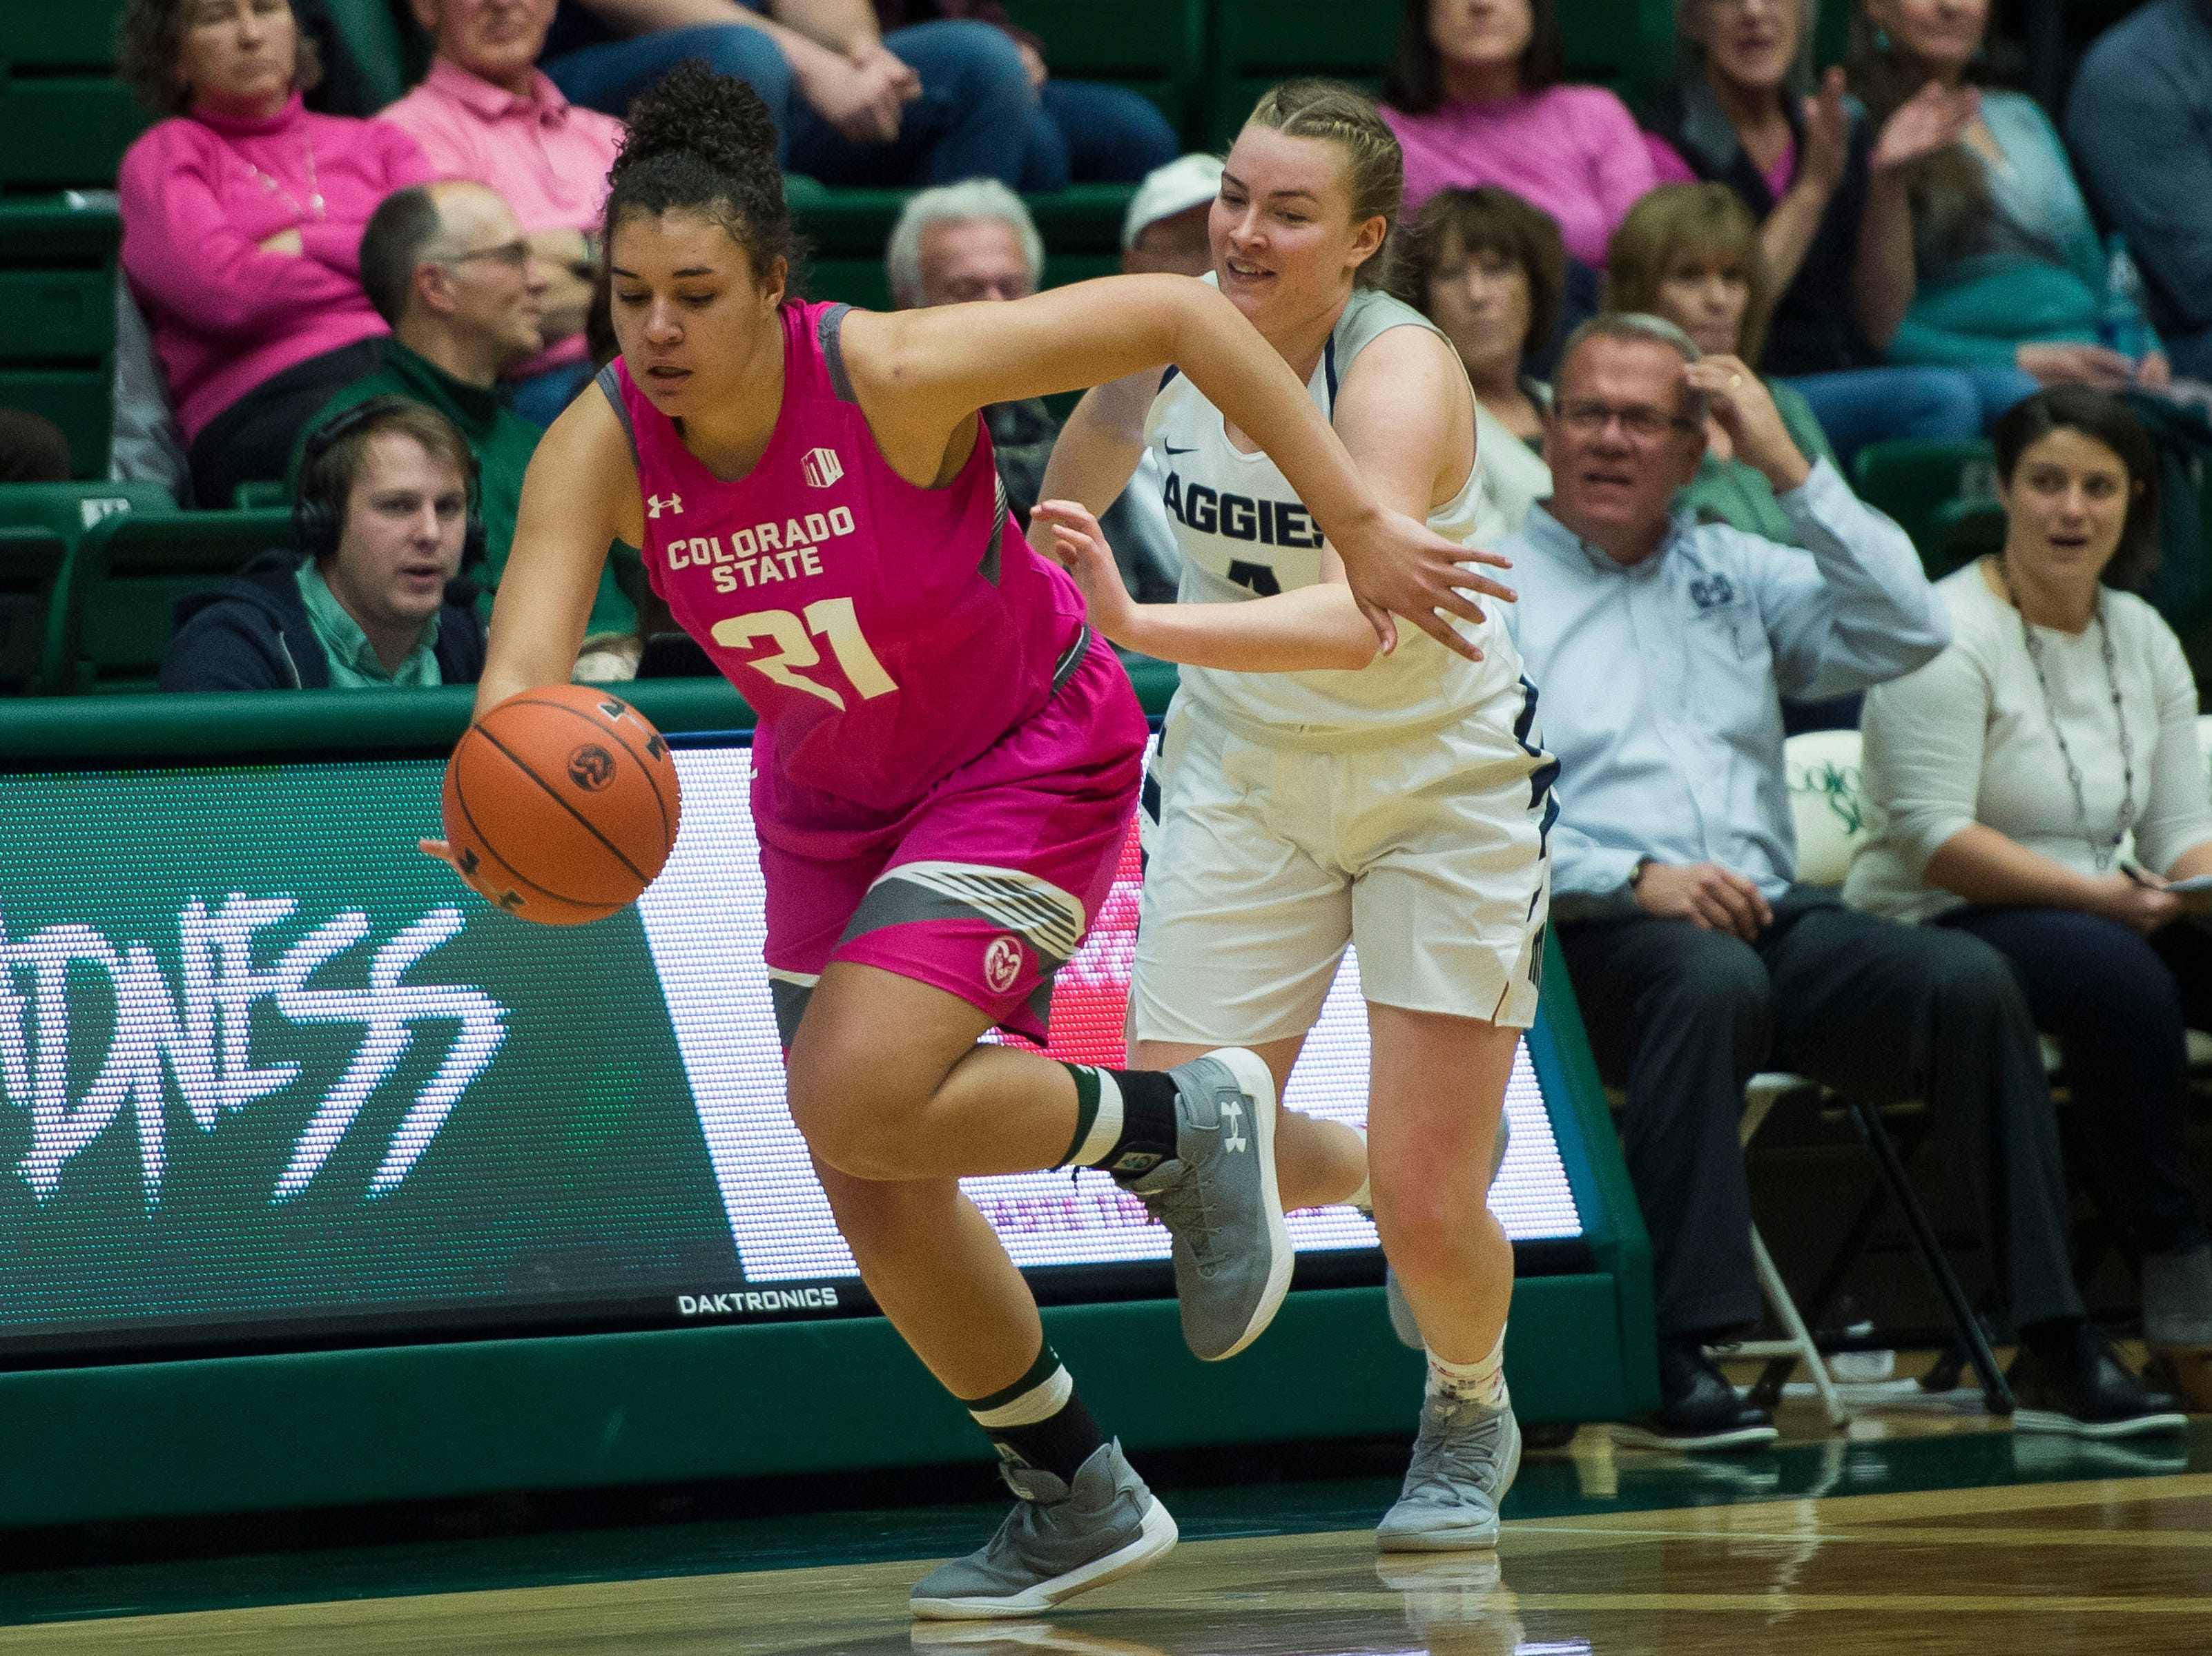 Colorado State University senior guard Myanne Hamm (21) turns up-court after stealing the ball from Utah State freshman guard Steph Gorman (4) on Saturday, Jan. 19, 2019, at Moby Arena in Fort Collins, Colo.